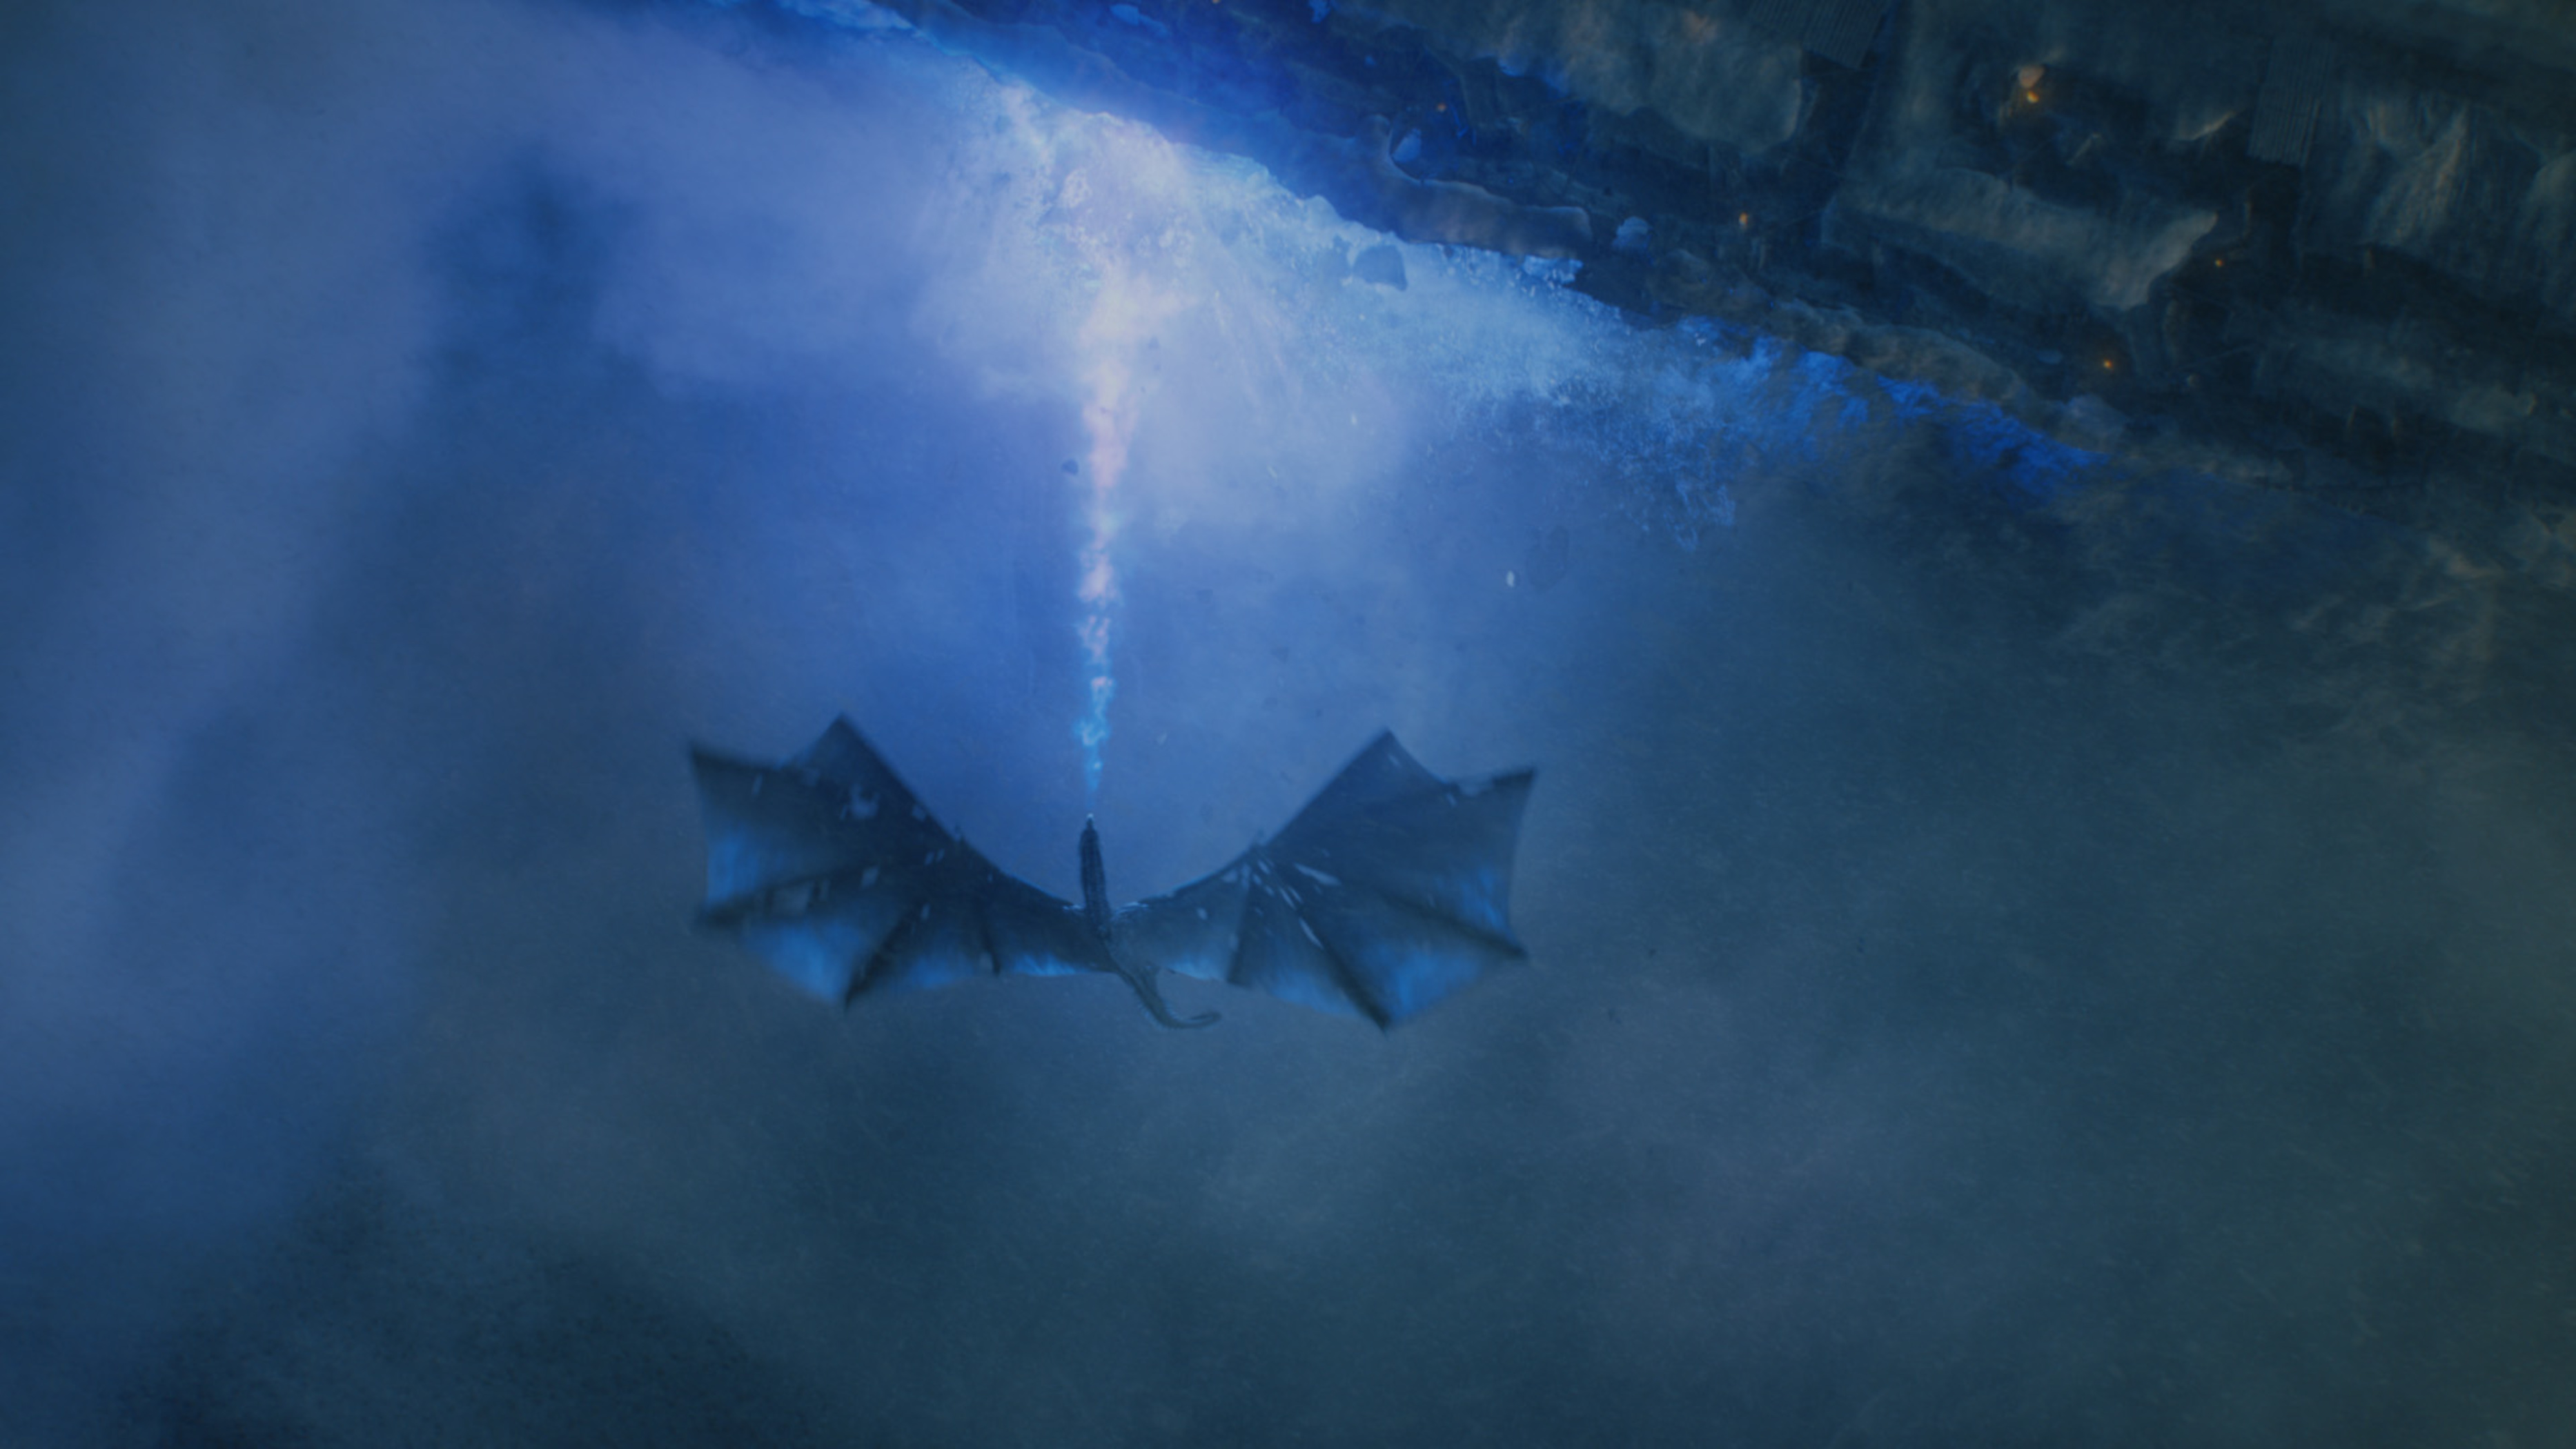 """Viserion and the Night King bringing down the Wall at Eastwatch is just one of many spectacular visual effects created for """"Game Of Thrones"""" throughout its seven seasons."""